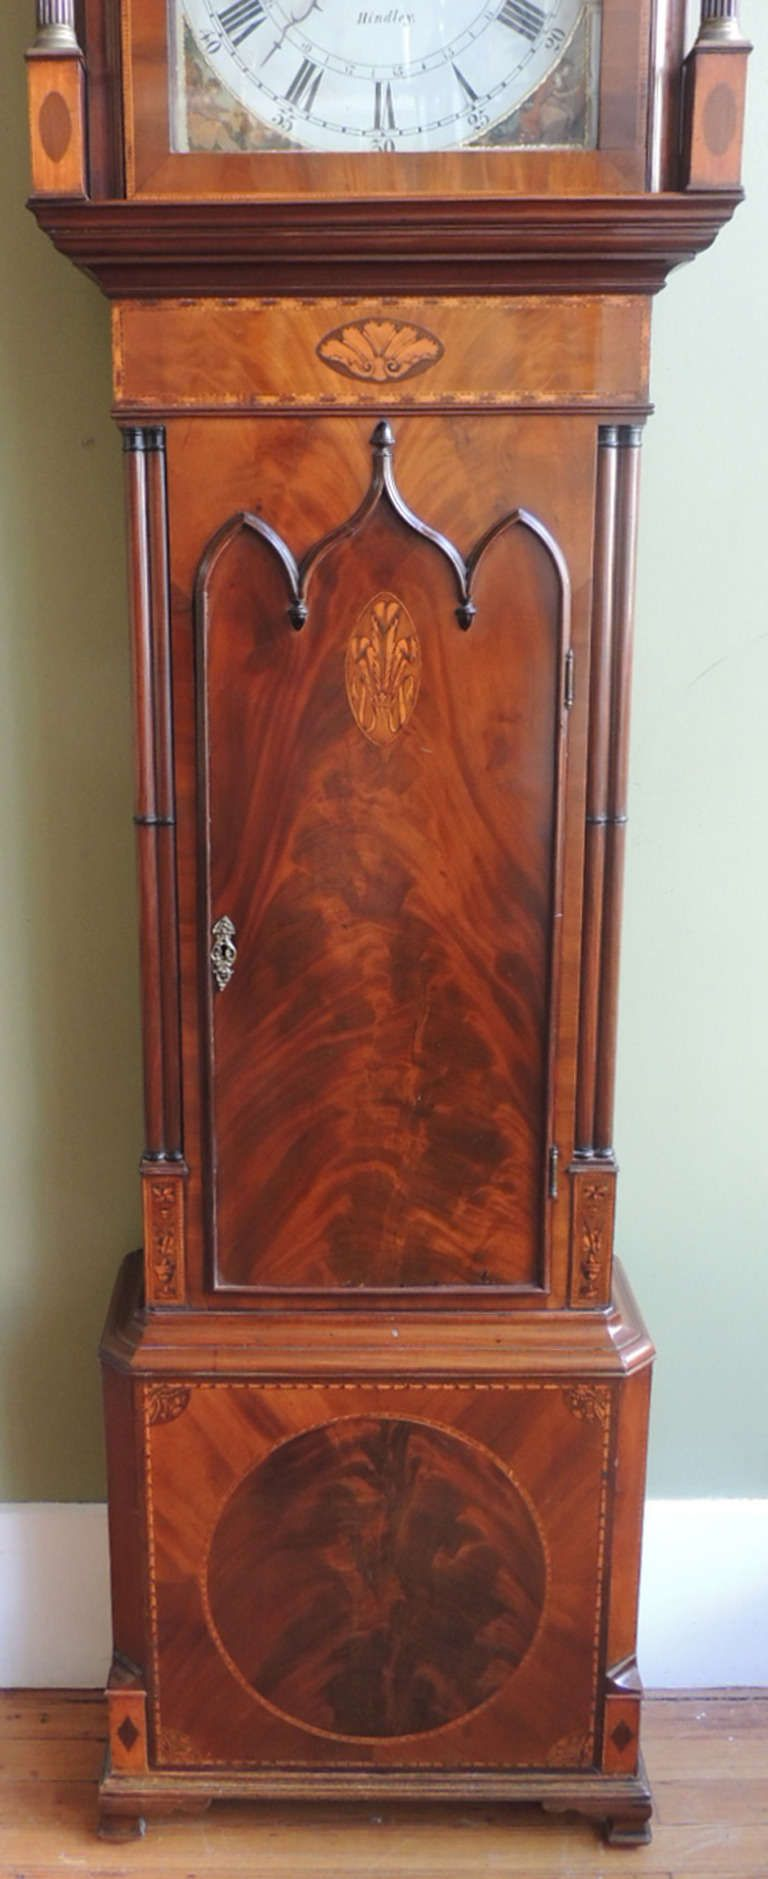 "1stdibs | 18th Century Chippendale Grandfather Clock | UK, c.1760 | Mahogany & Pine | 22""w x 12""d x 7'8"""